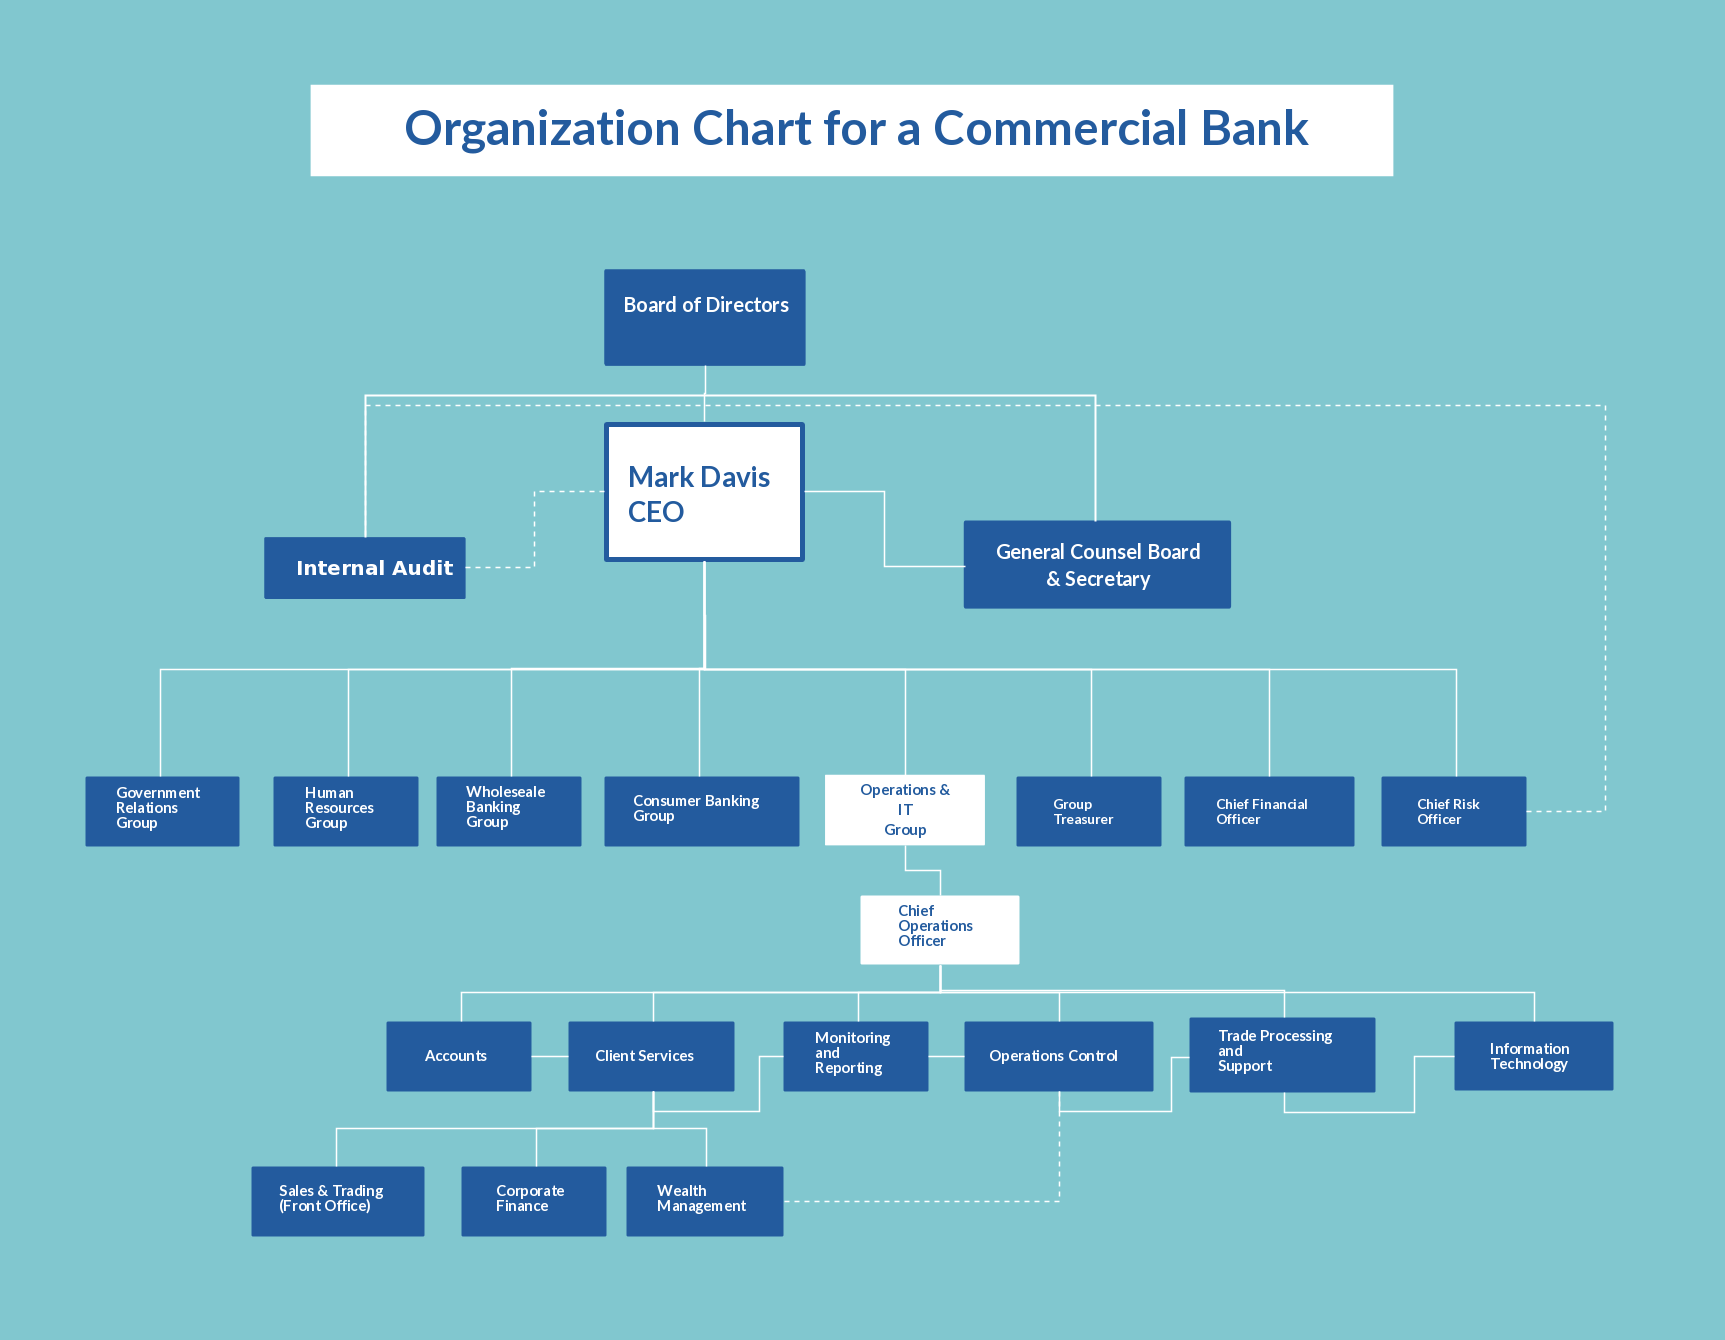 Unique Ms Office Organization Chart Template Exceltemplate Xls Xlstemplate Xlsformat Excelformat Organization Chart Organizational Chart Commercial Bank